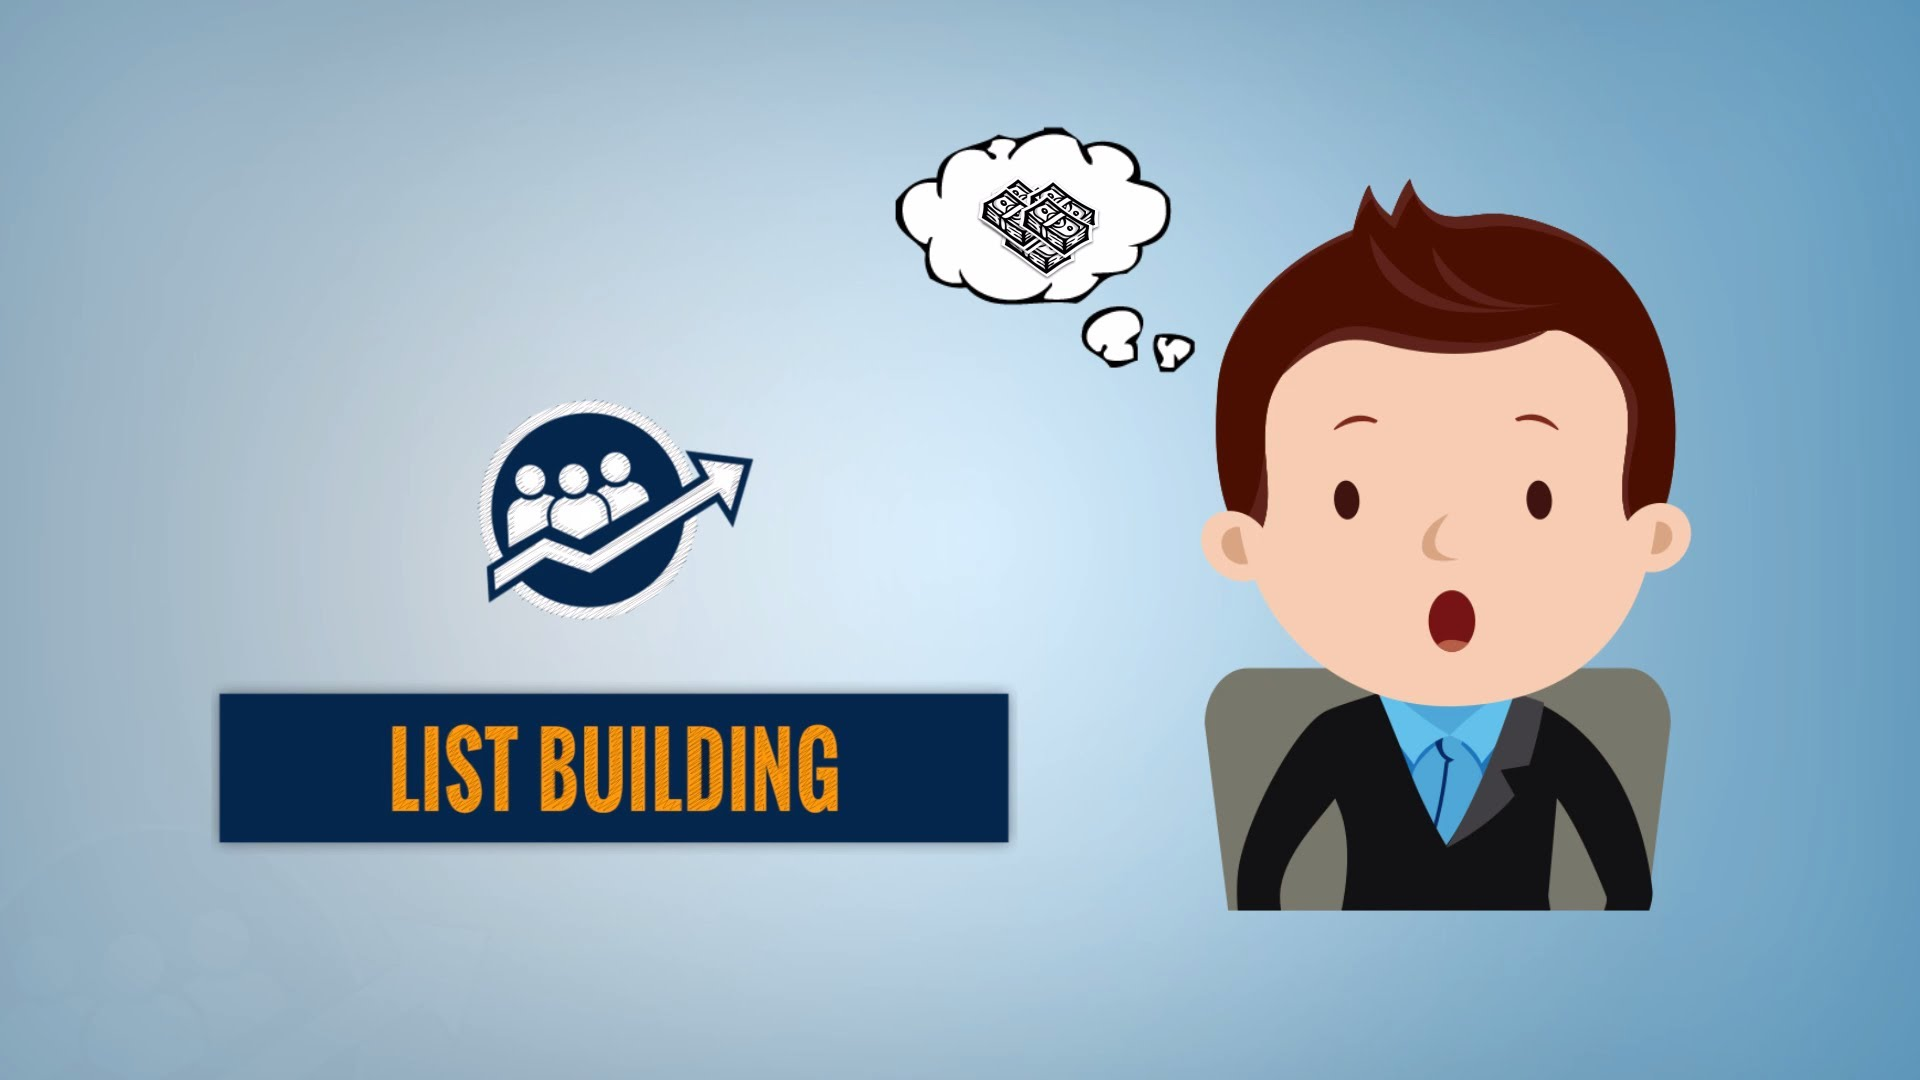 List Building in 5 Easy Steps